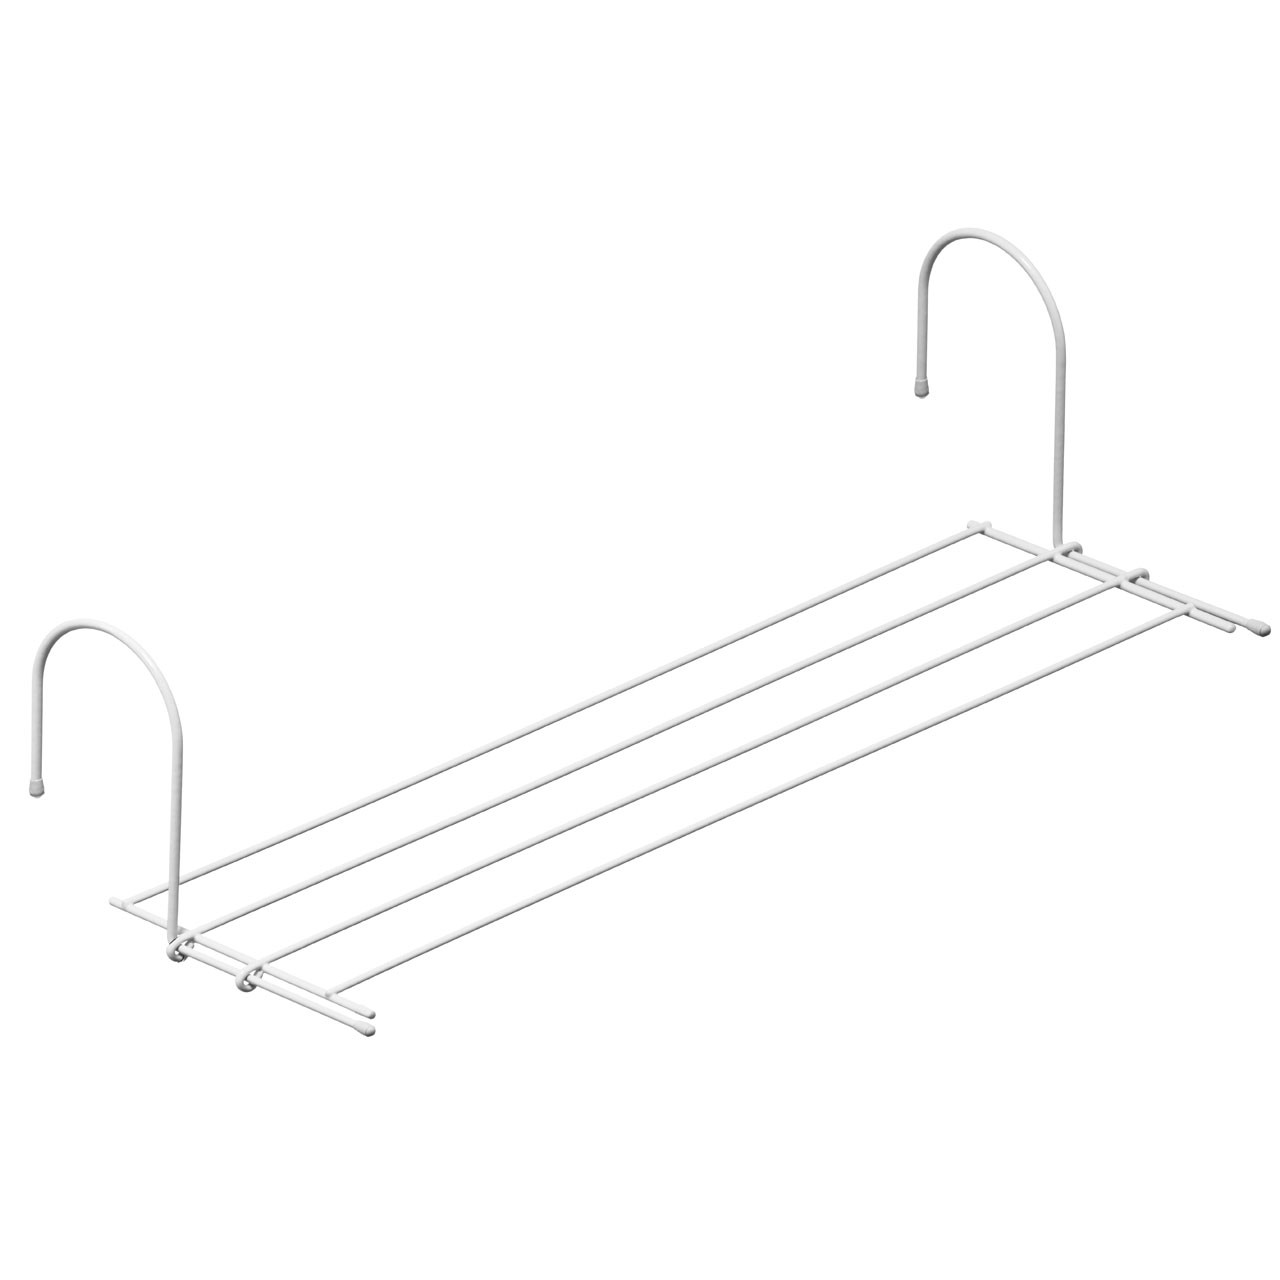 Prime Furnishing 4 Bar Radiator Airer - White